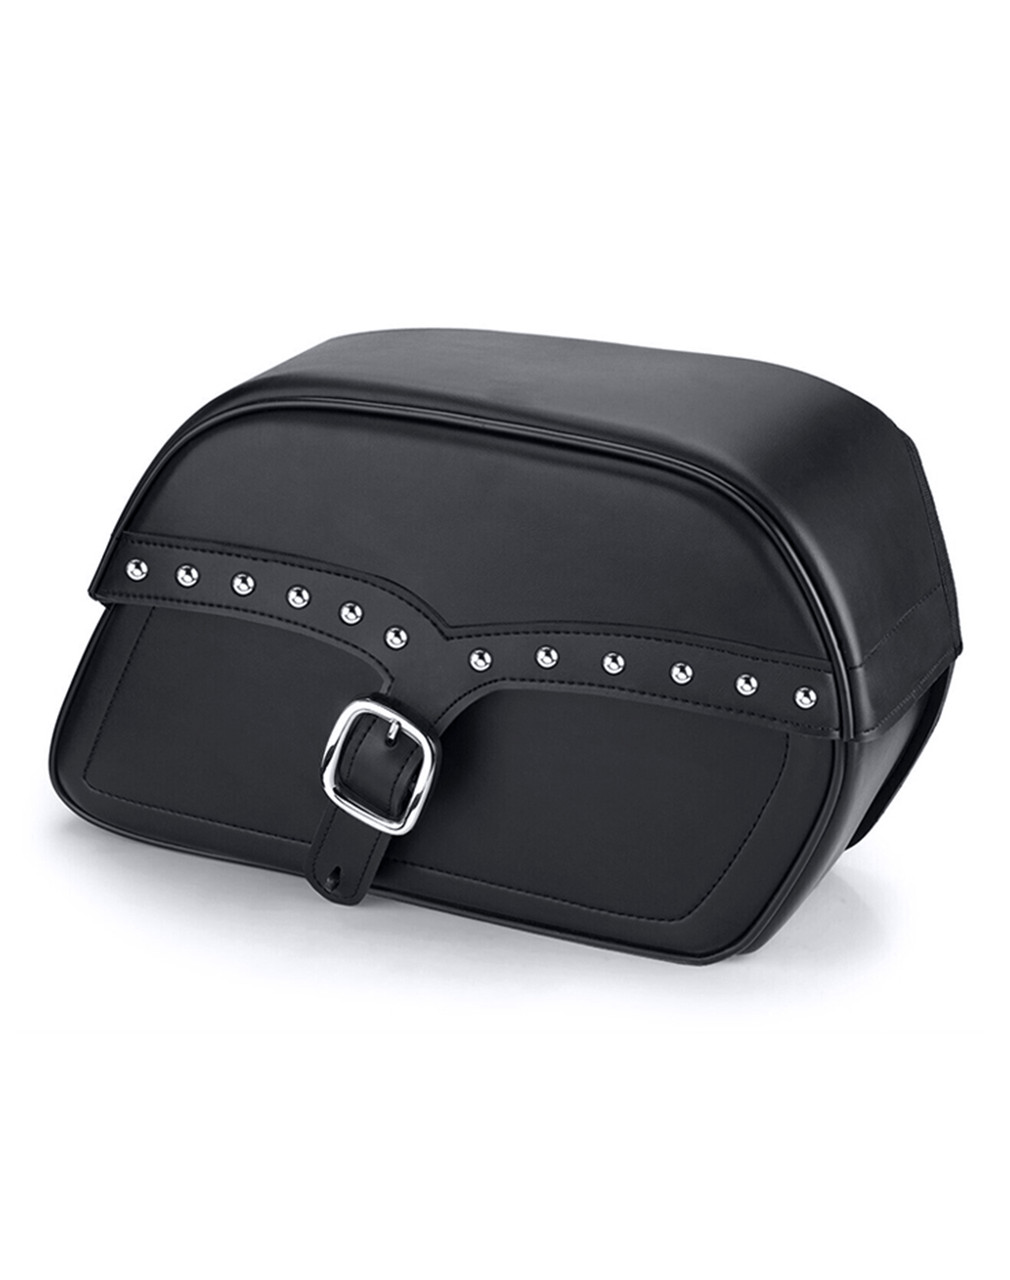 Honda 1500 Valkyrie Interstate SS Slanted Studded Large Motorcycle Saddlebags Main View